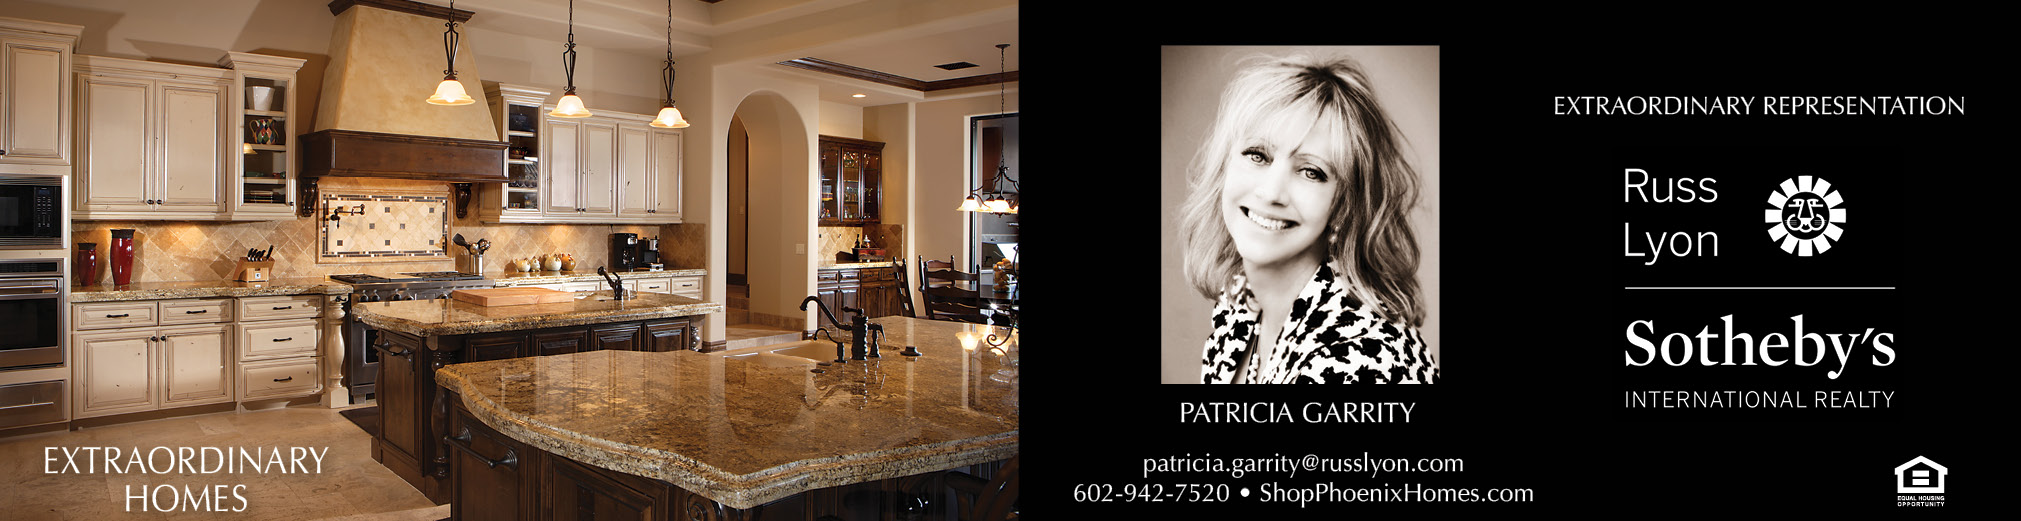 Visit Patricia Garrity billboard revised